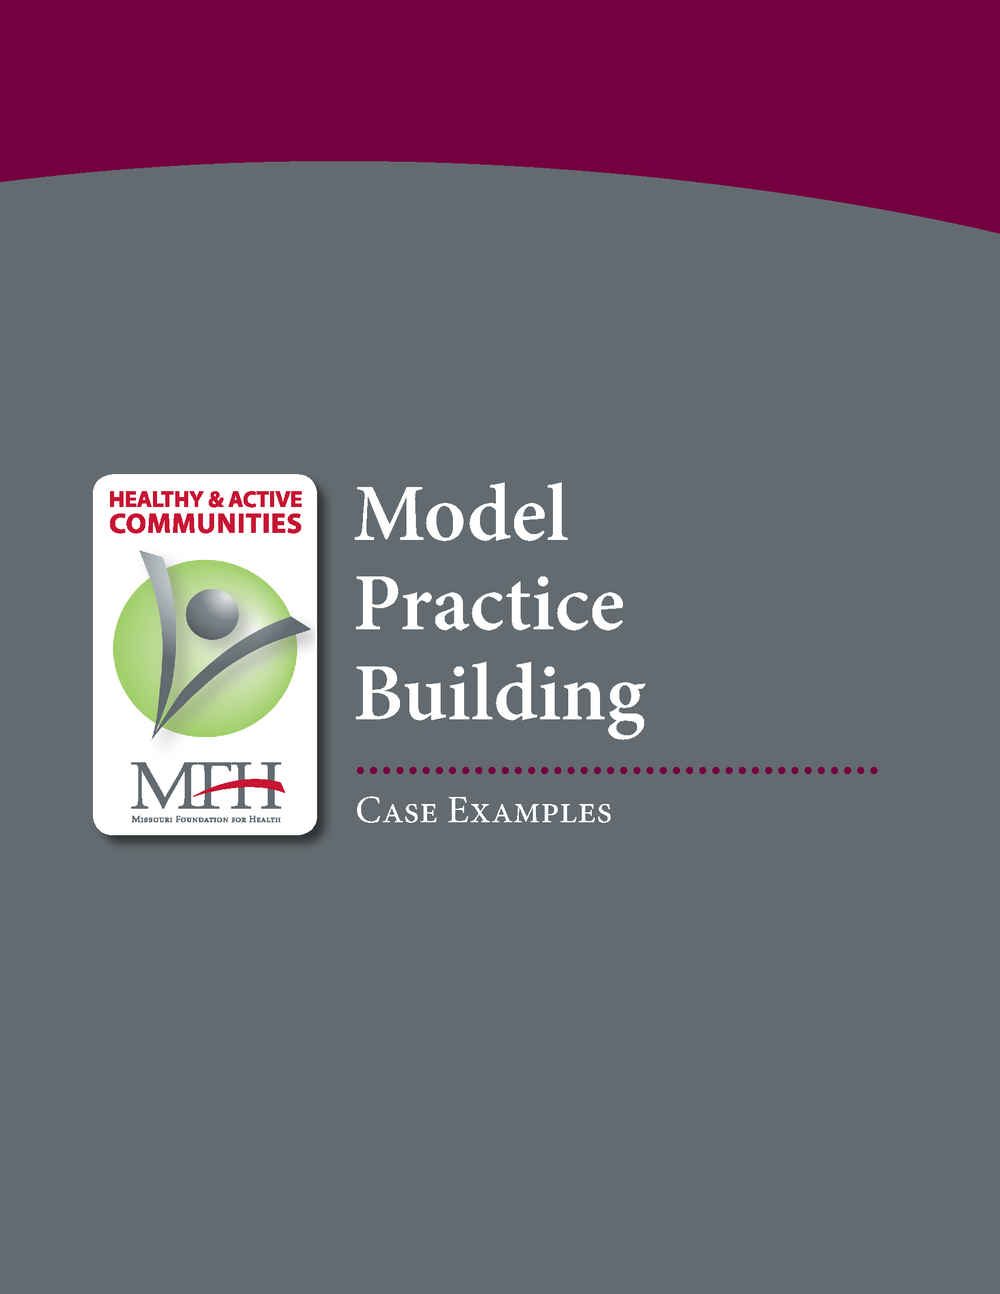 Healthy & Active Communities Model Practices Case Examples 2012